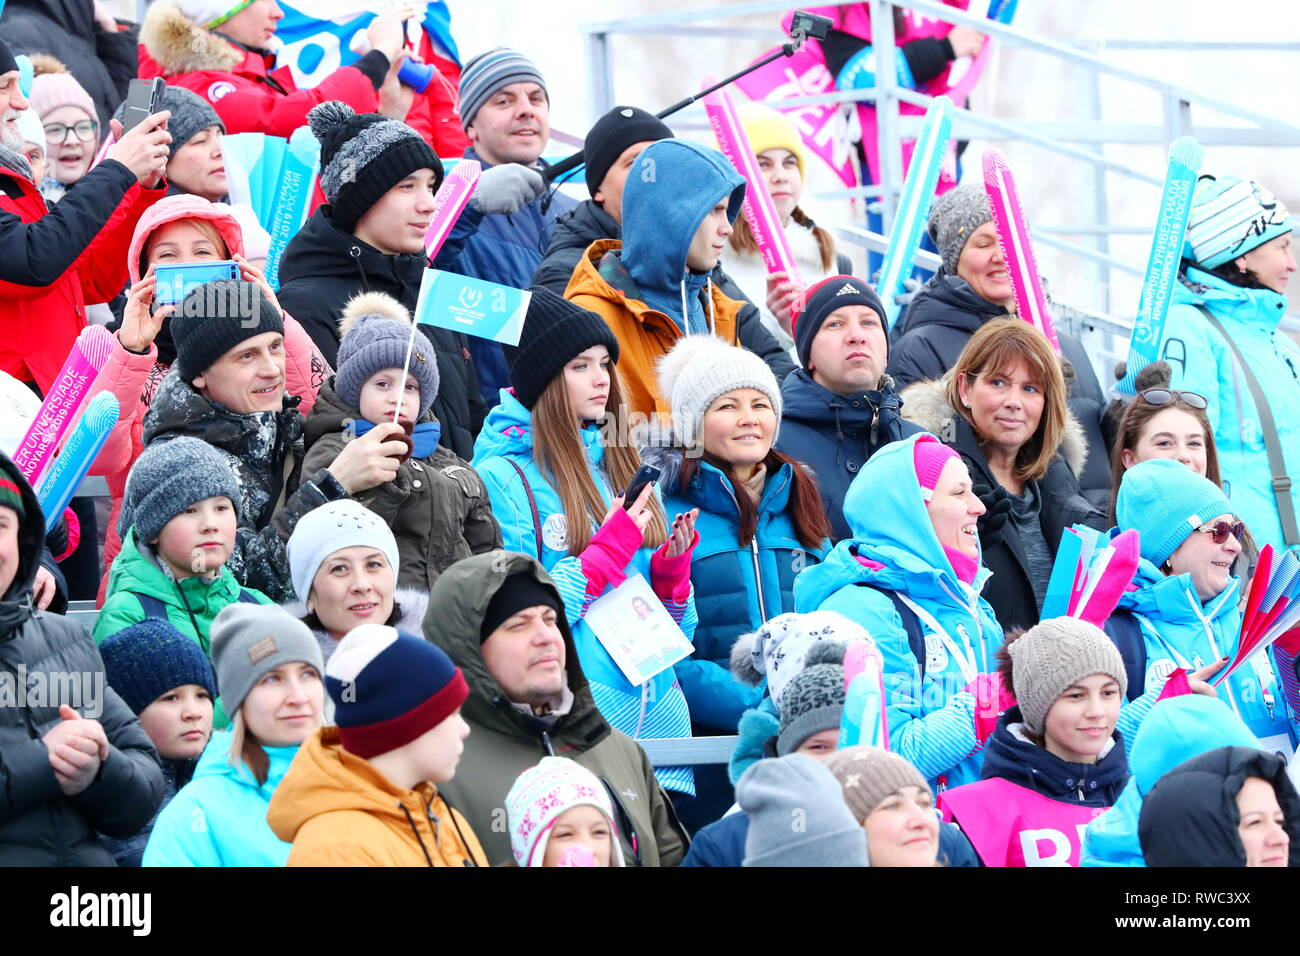 Sopka Cluster, Krasnoyarsk, Russia. 5th Mar, 2019. General view, MARCH 5, 2019 - Snowboarding : Parallel Giant Slalom during 29th Winter Universiade Krasnoyarsk 2019 at Sopka Cluster, Krasnoyarsk, Russia. Credit: Naoki Nishimura/AFLO SPORT/Alamy Live News Stock Photo